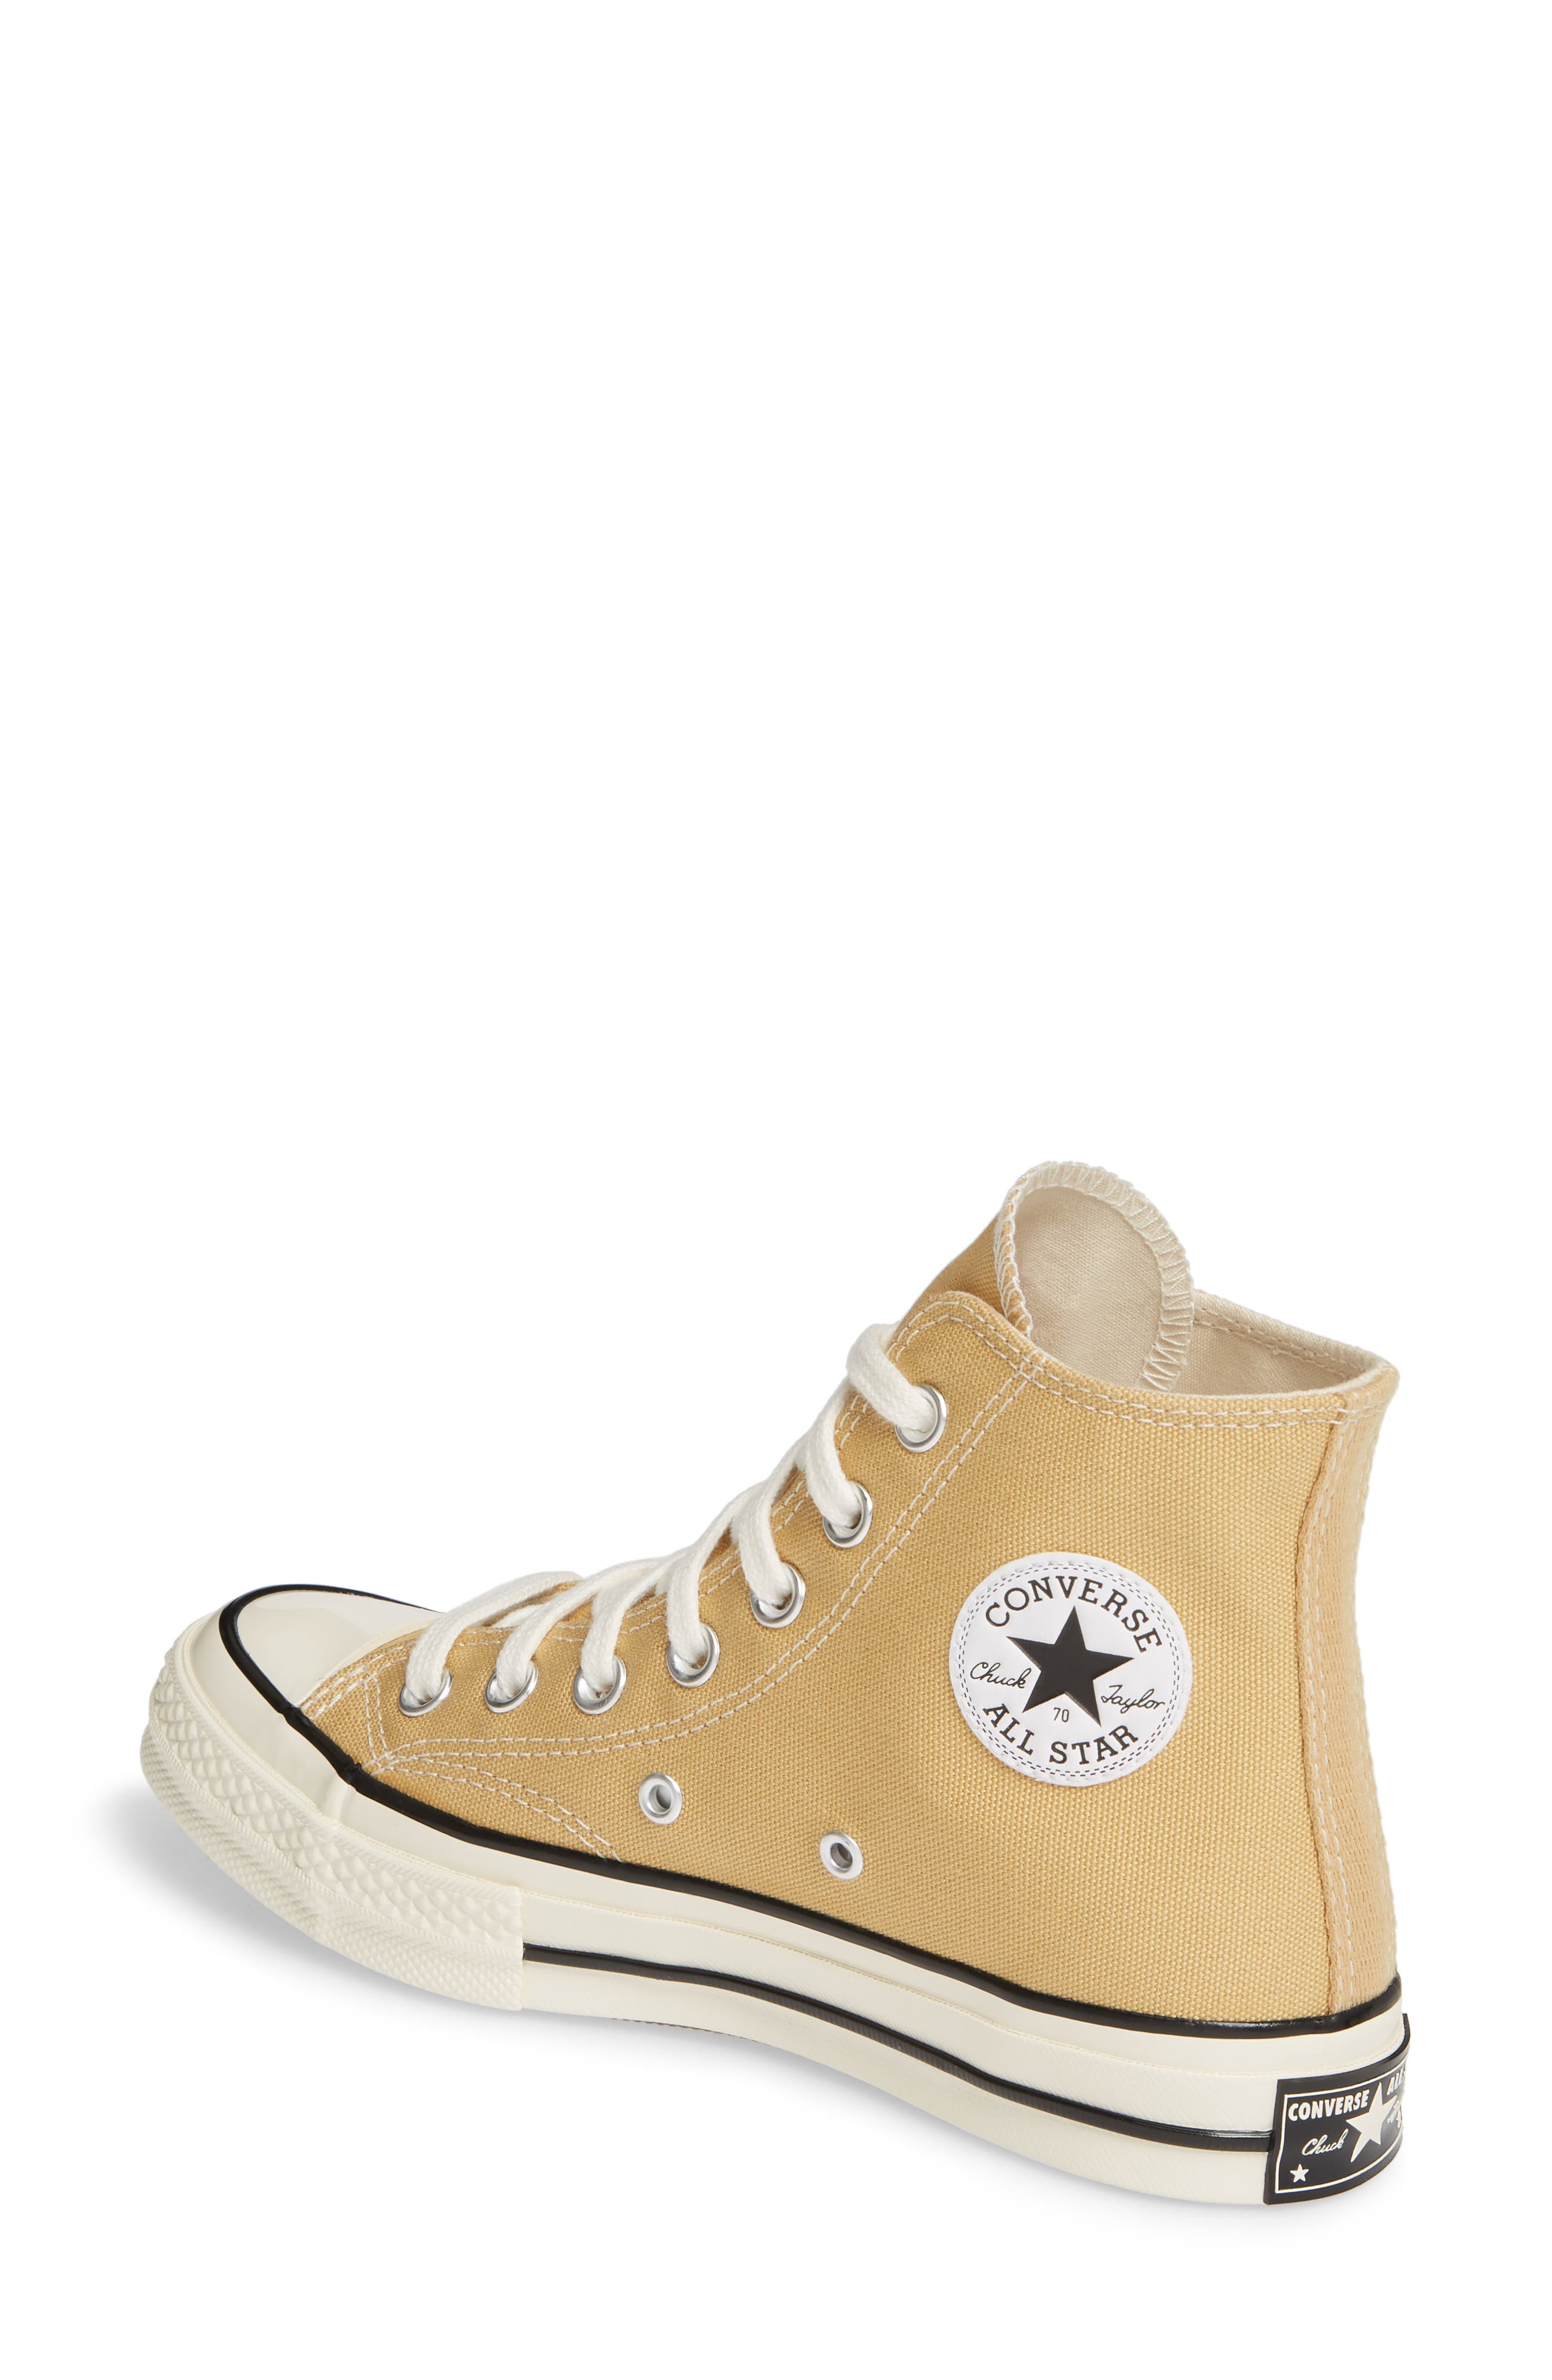 ,                             Chuck Taylor<sup>®</sup> All Star<sup>®</sup> 70 High Top Sneaker,                             Alternate thumbnail 2, color,                             CLUB GOLD/ EGRET/ BLACK